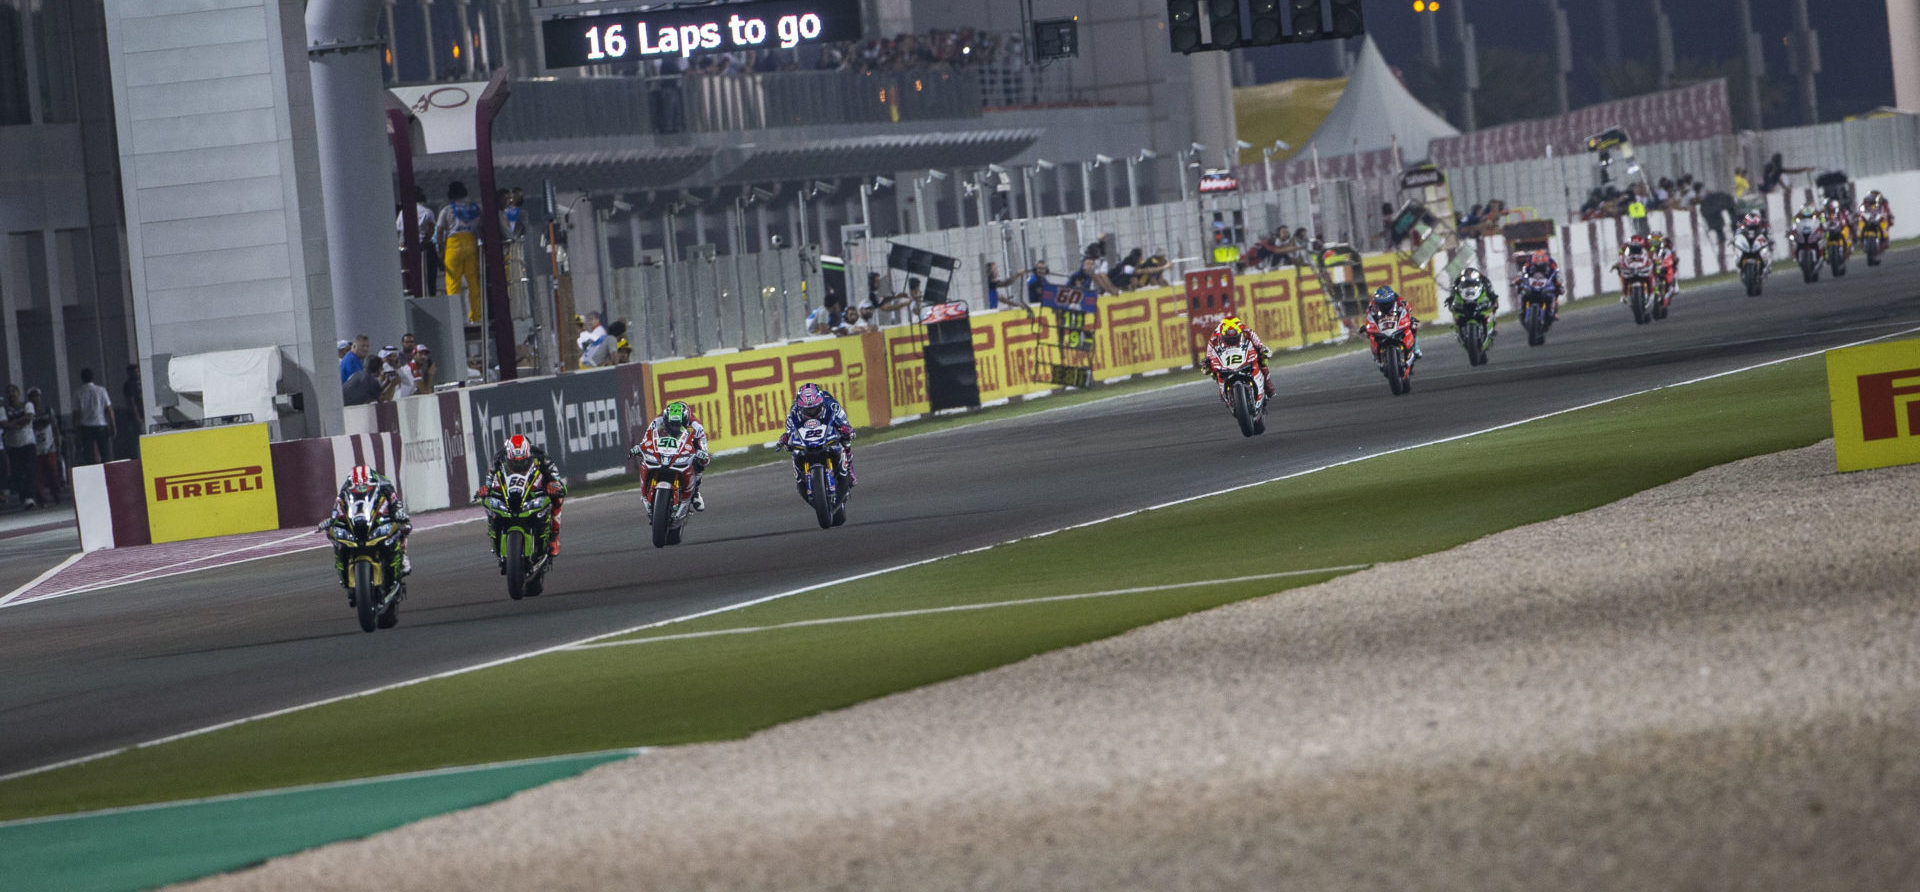 Action from World Superbike Race One in Qatar in 2018. Photo courtesy of Dorna WorldSBK Press Office.